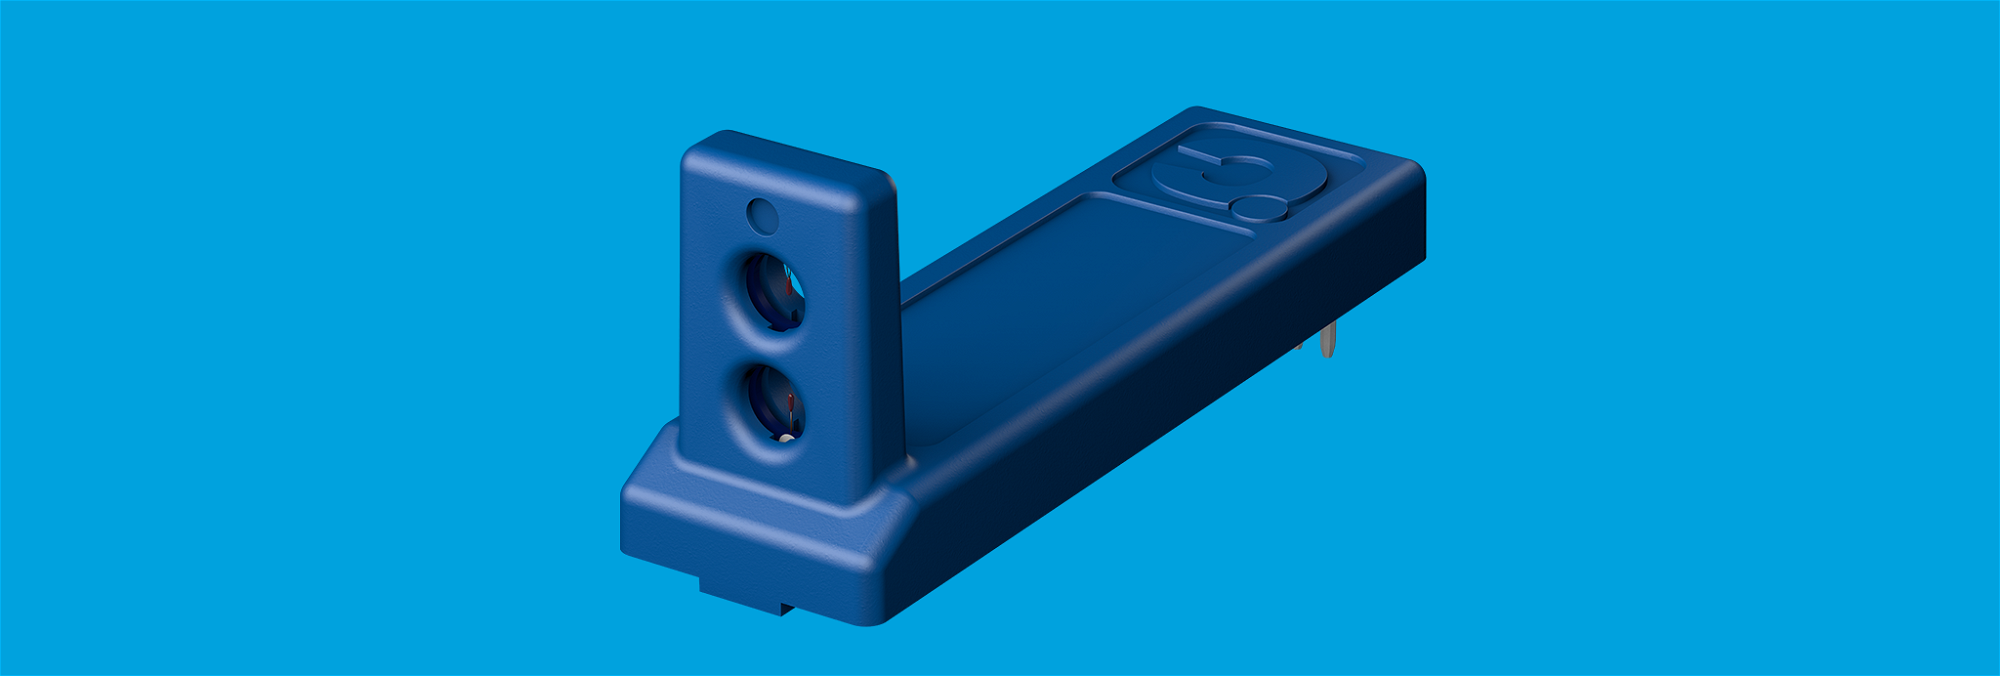 Horizontal airflow sensor for low-profile mounting on PCB and PCBA.